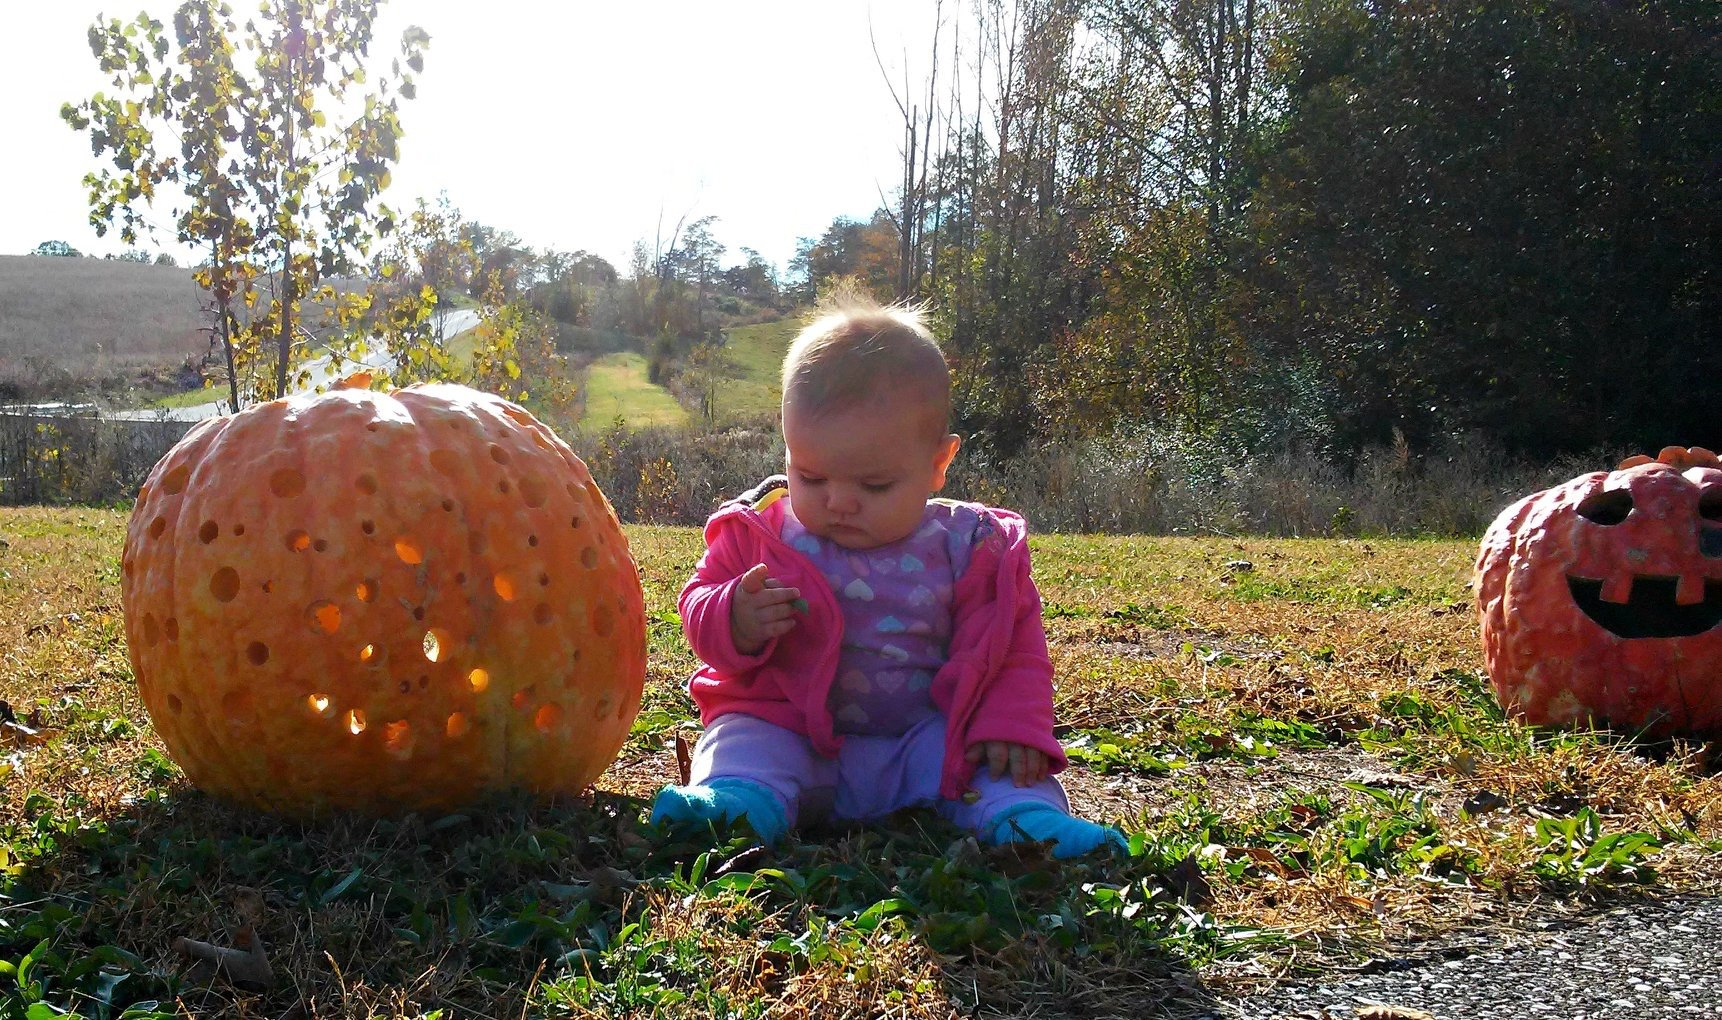 baby sitting next to a pumpkin